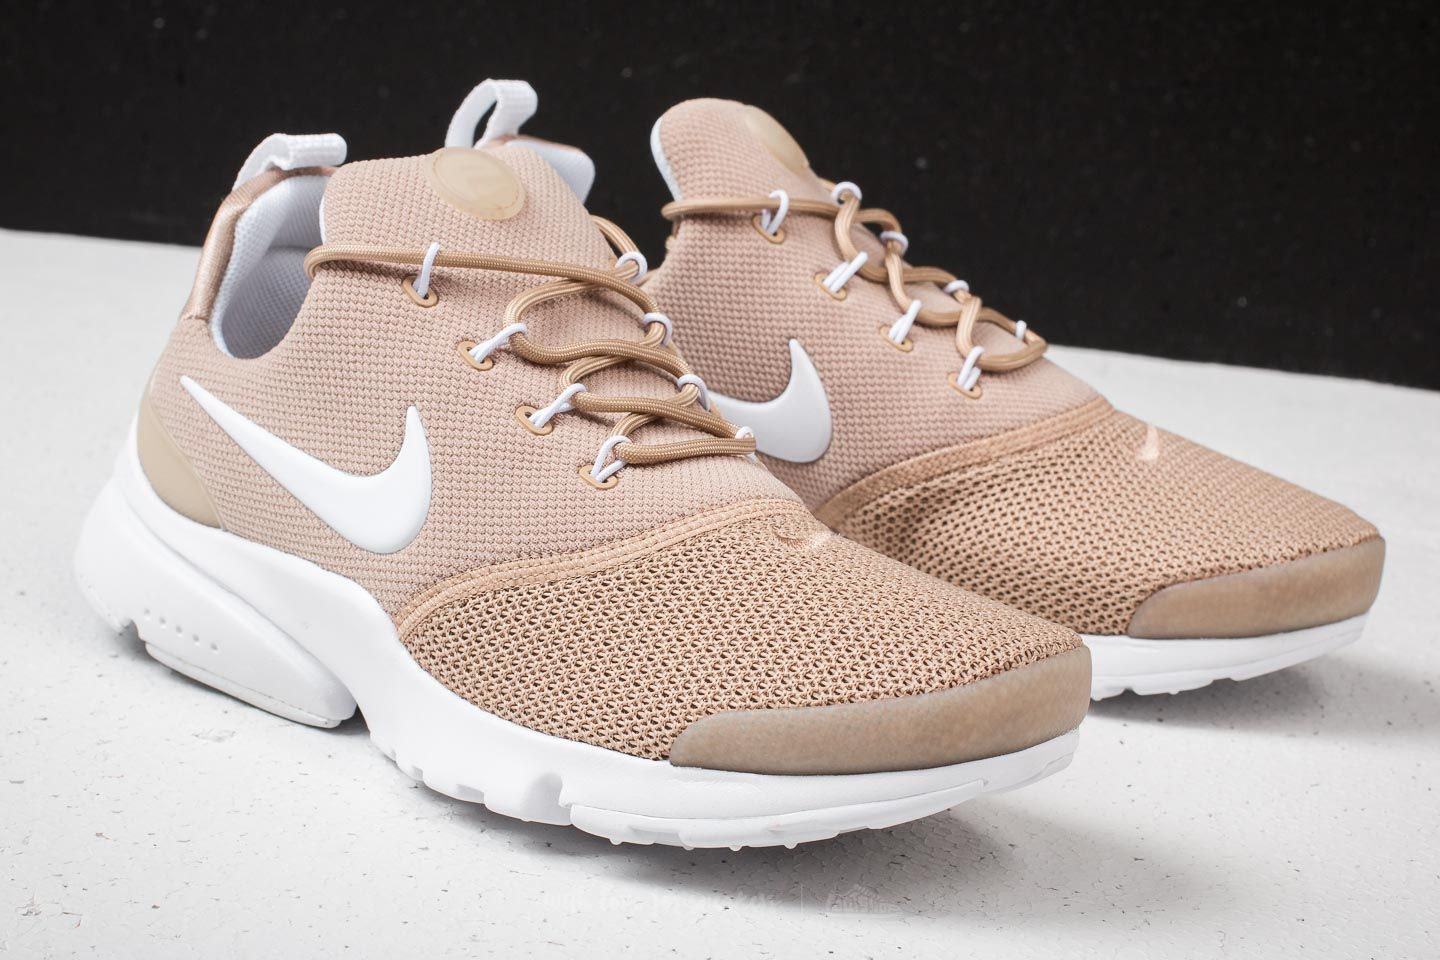 Women's shoes Nike Wmns Presto Fly Sand